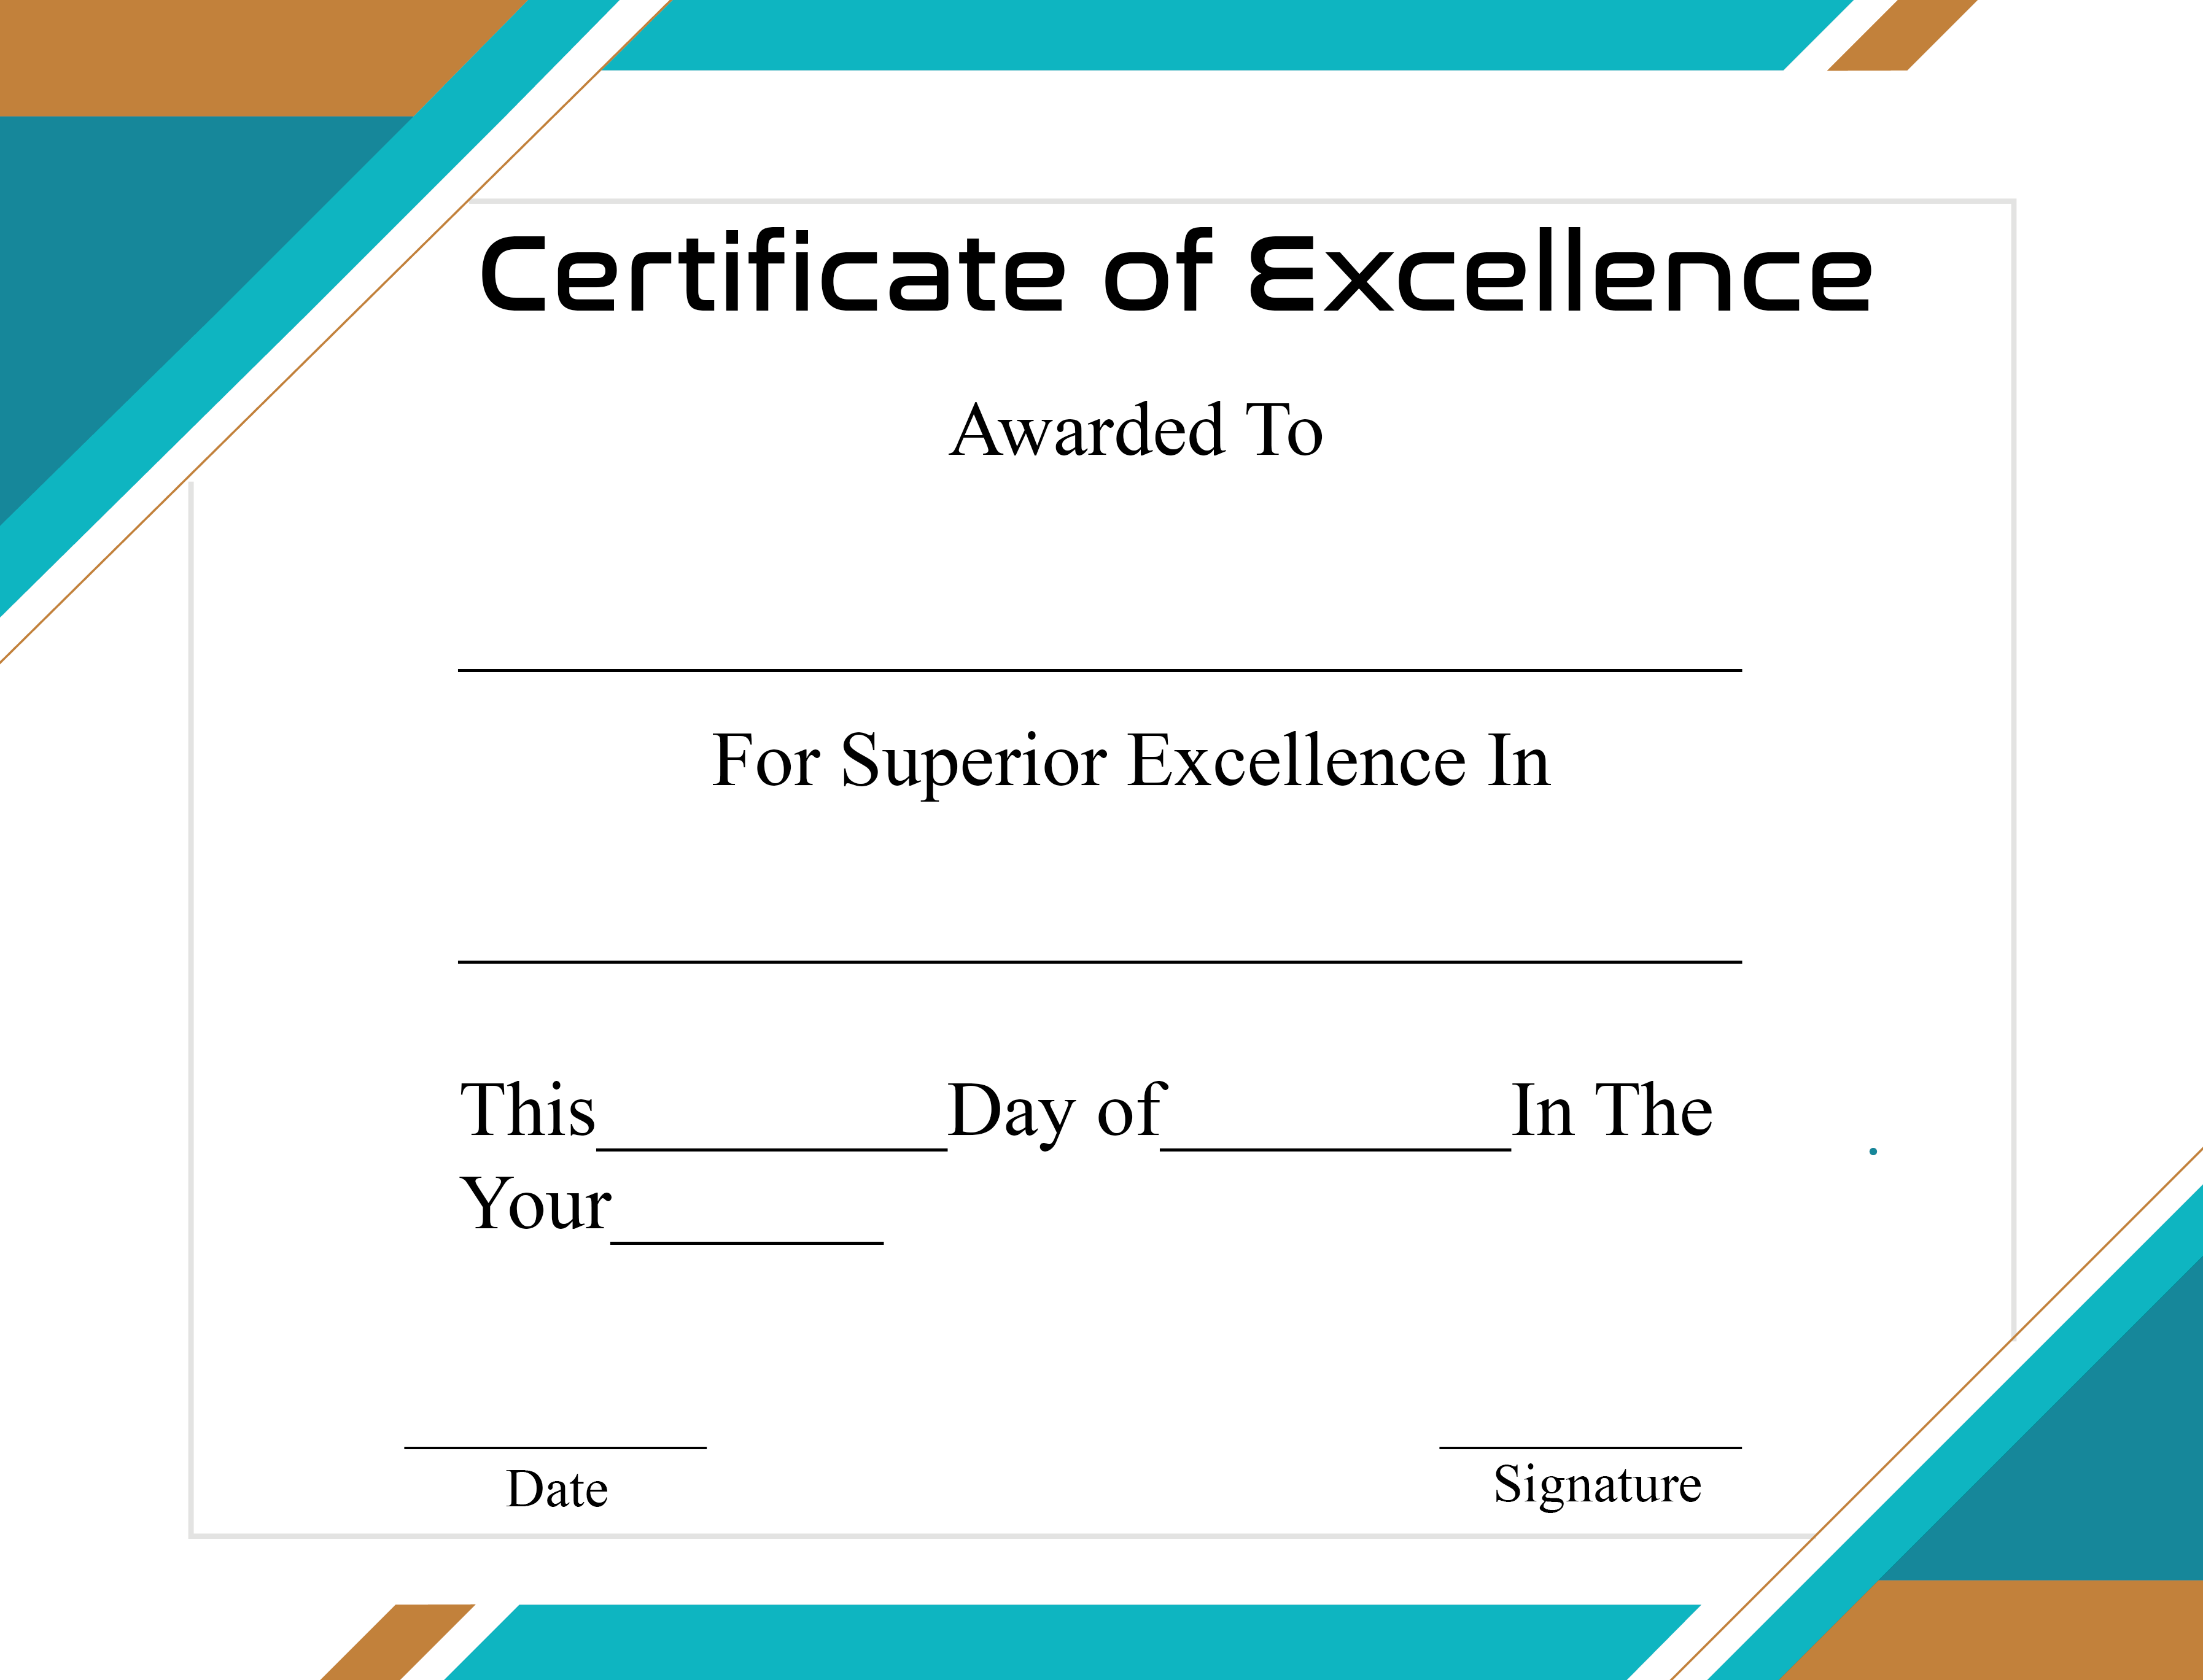 Certificate of Excellence Format